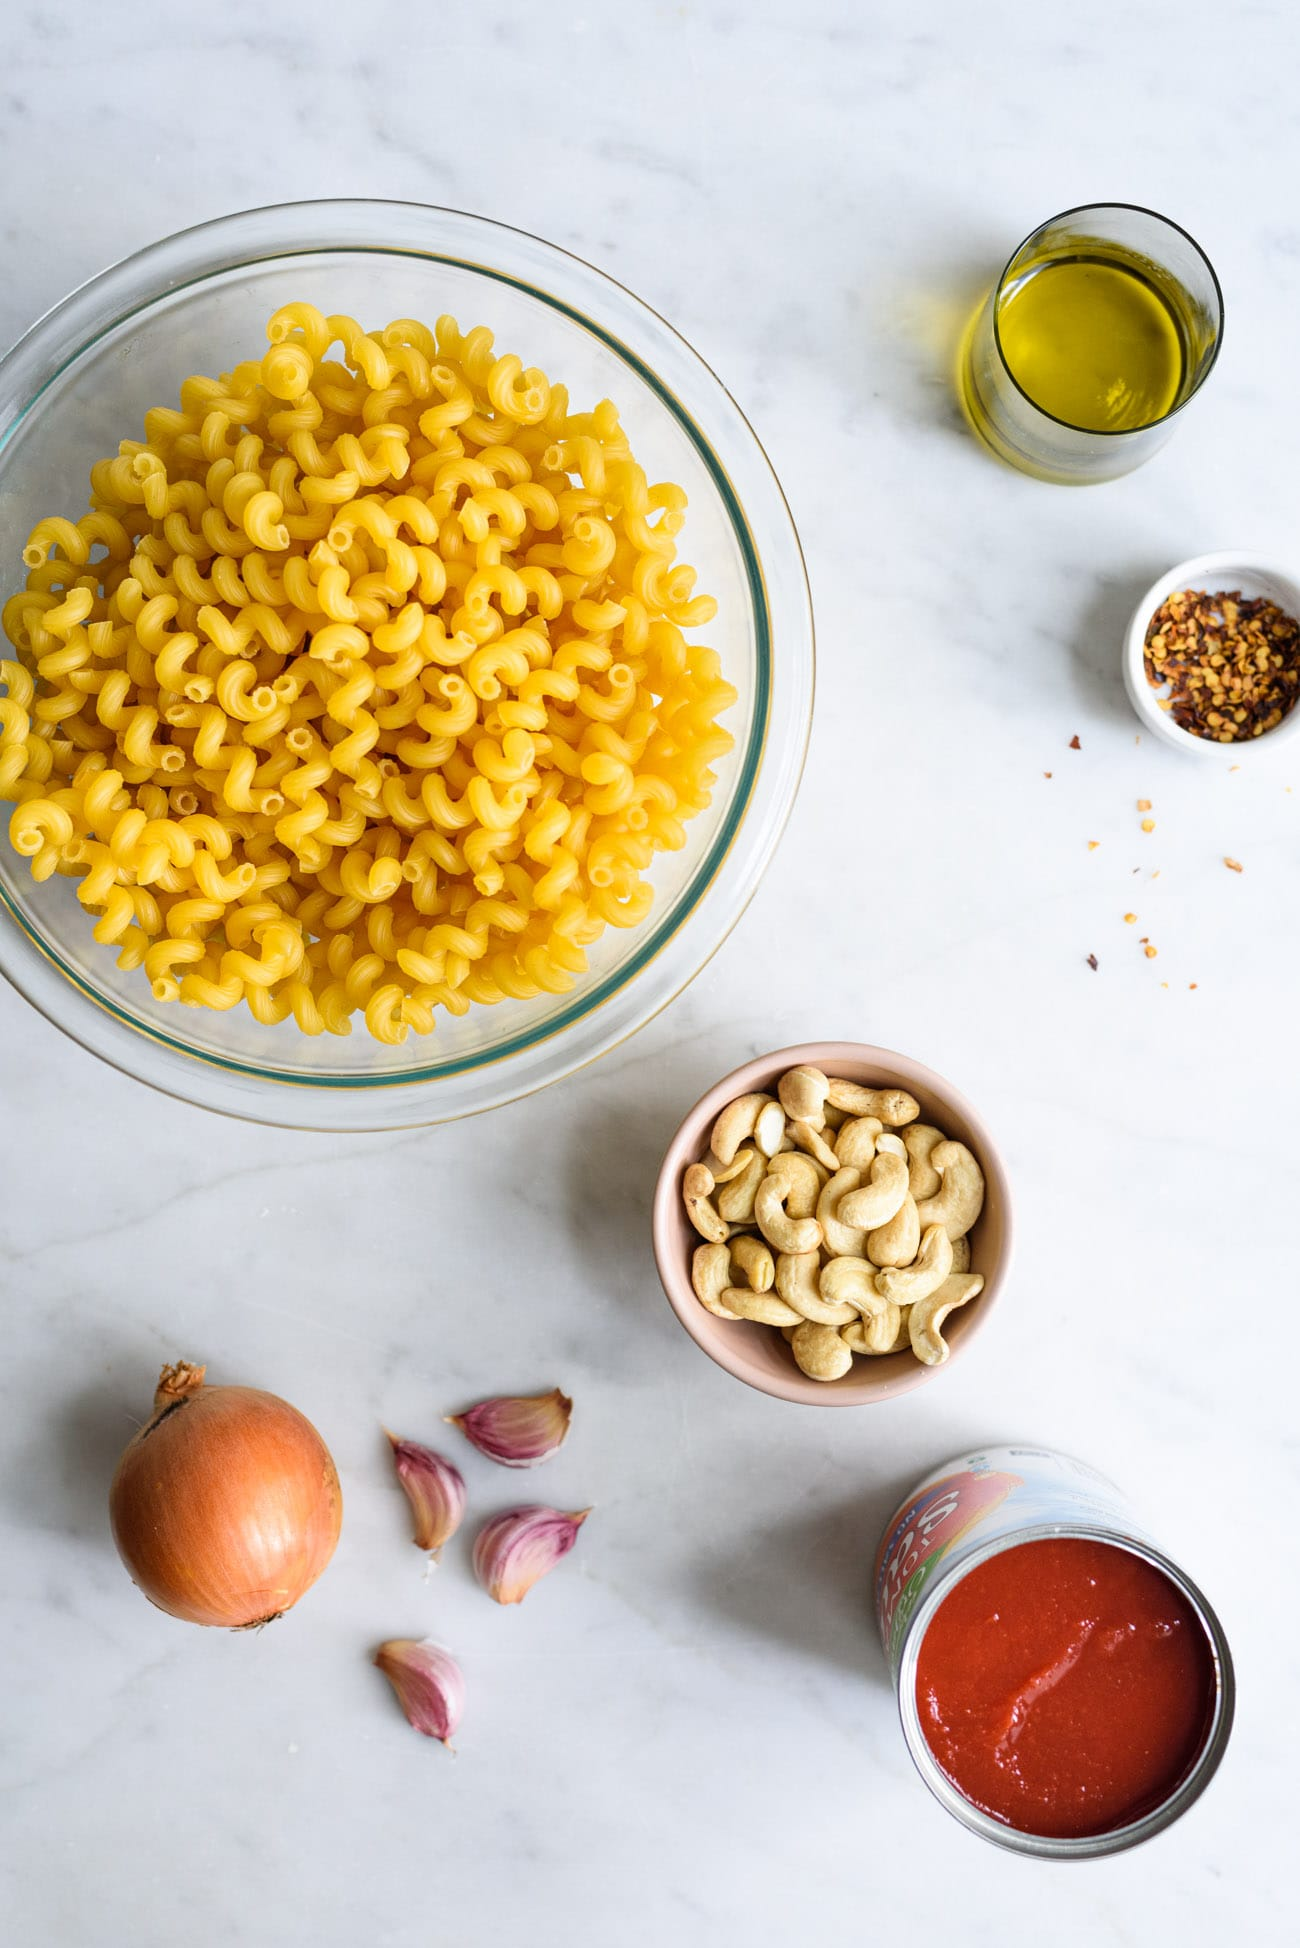 Ingredients to make vegan creamy tomato pasta laid out on a marble counter: cavatappi, cashews, canned tomato sauce, onion, and garlic